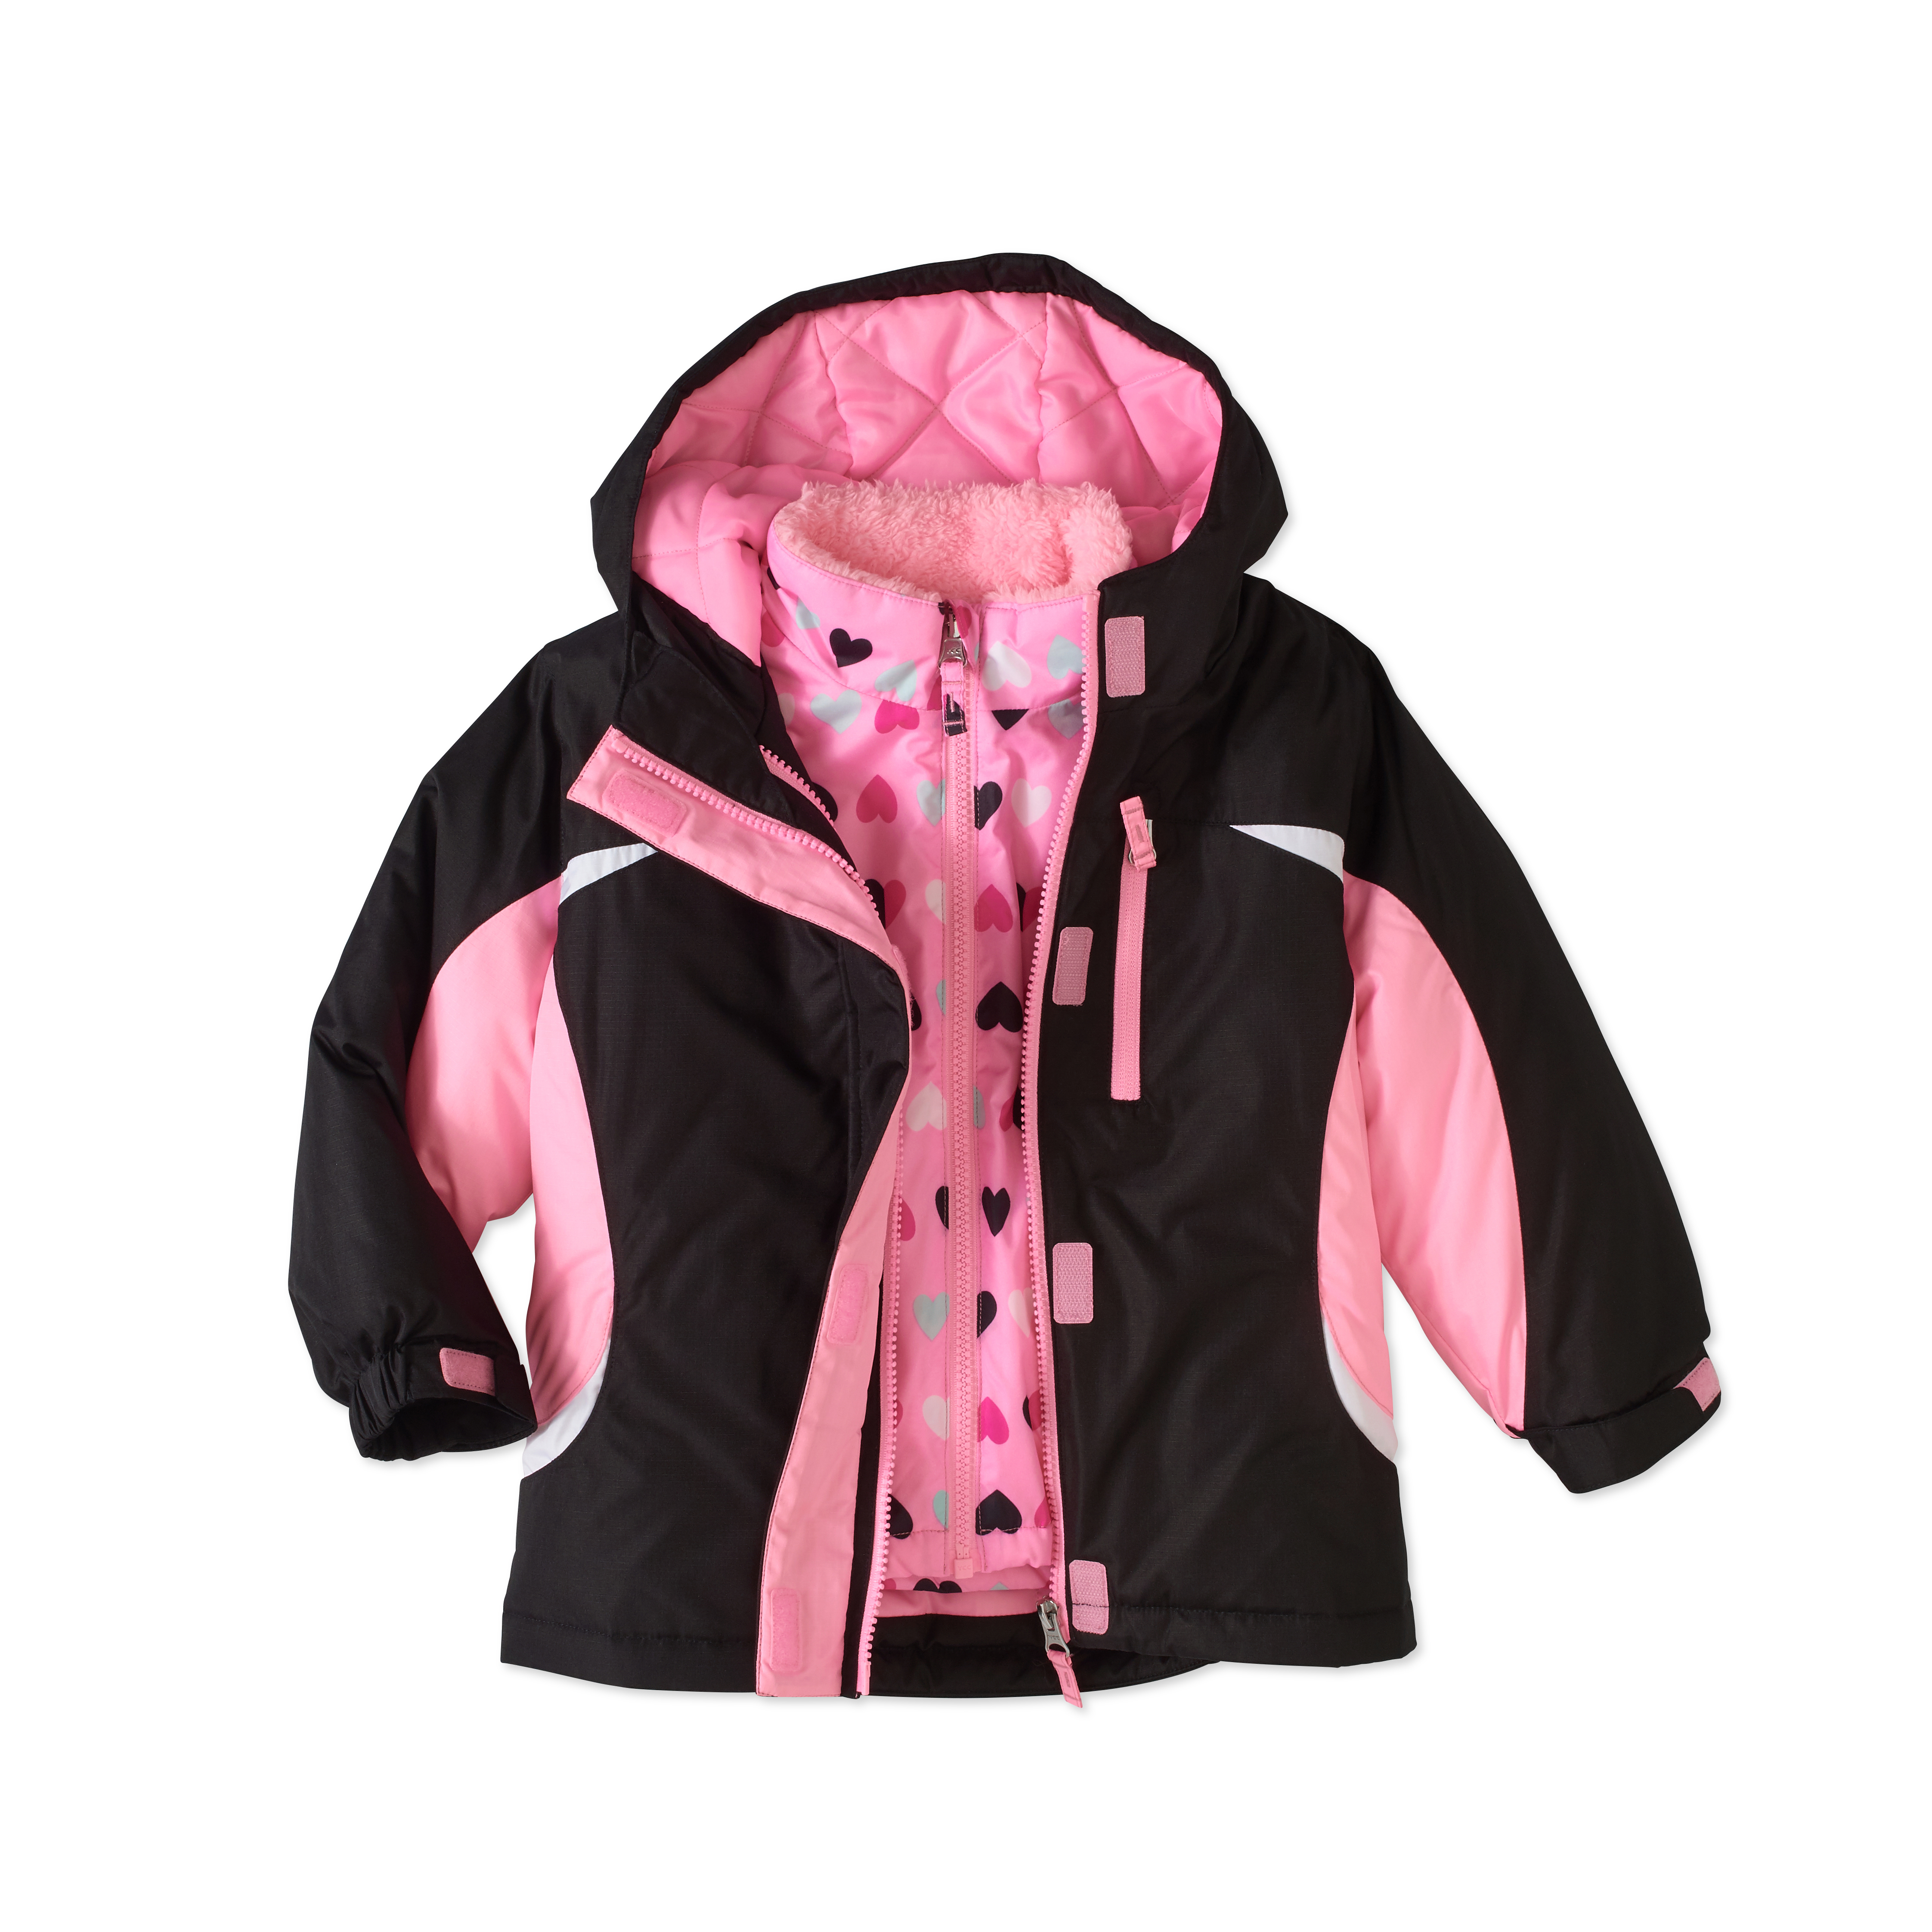 Healthtex Baby Toddler Girl 3 In 1 Ski/Snowboard Jacket With Removable Inner Layer